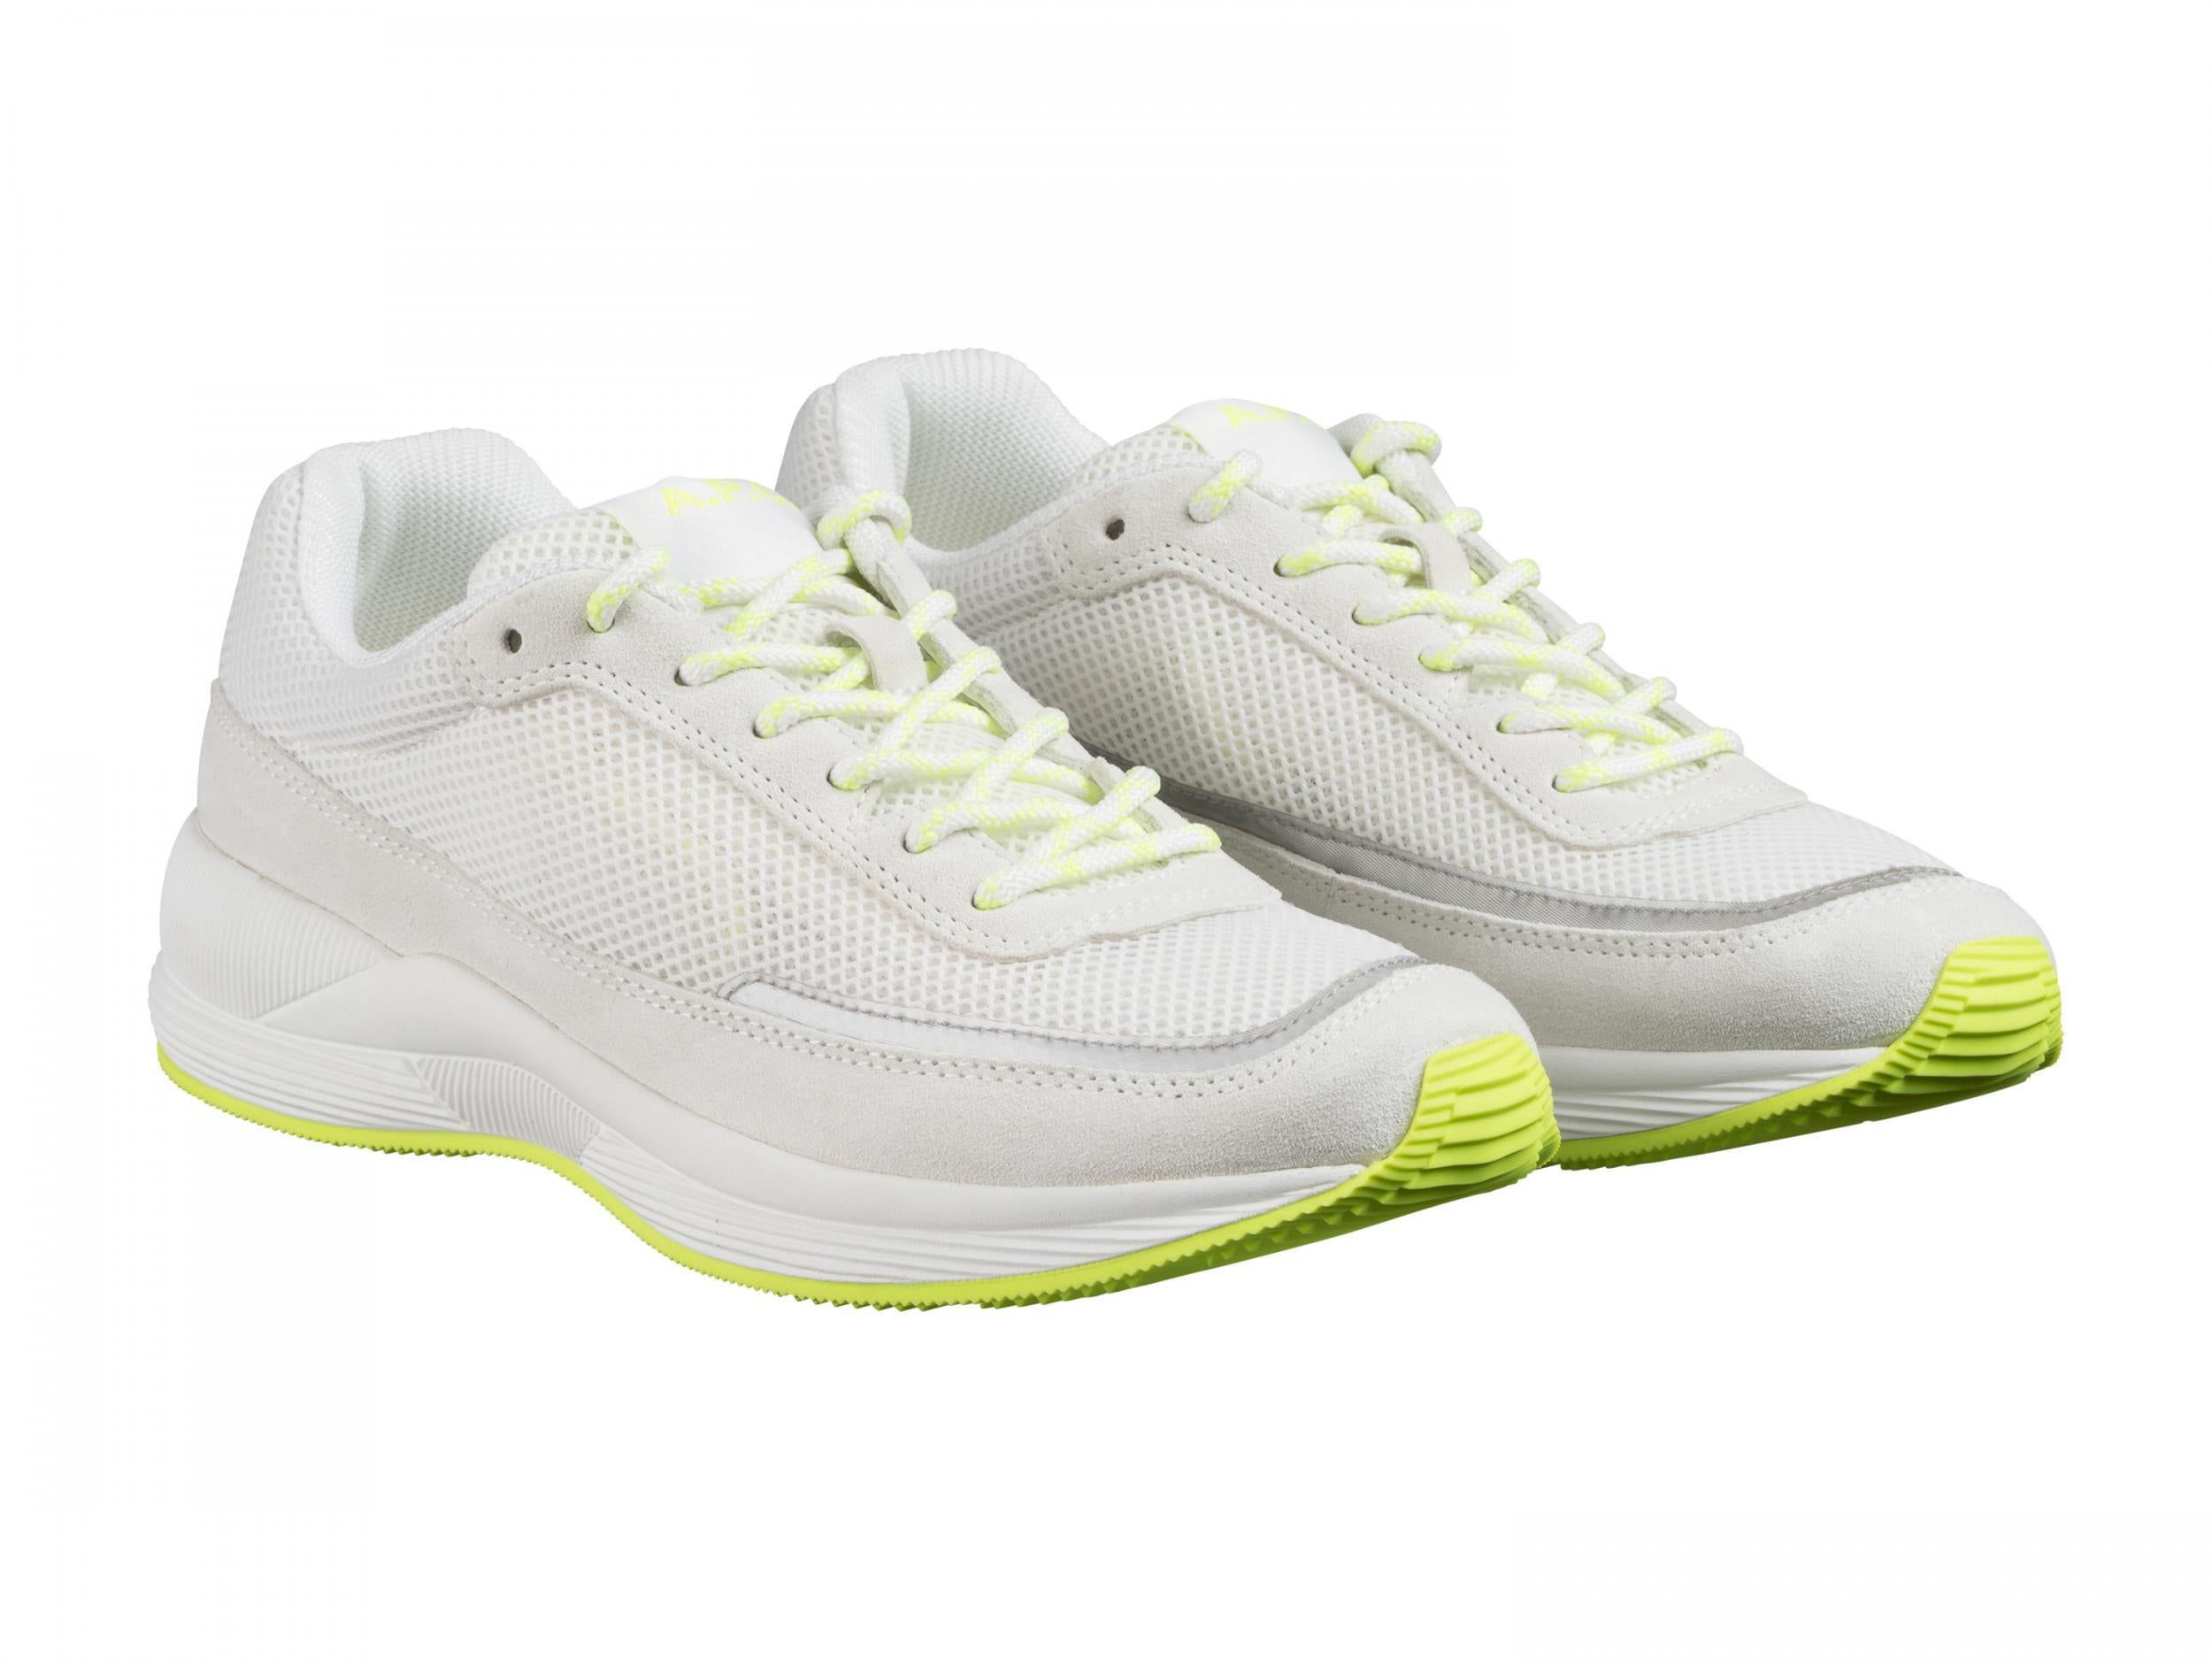 789fe490fe Best men's trainers for all budgets, from high street to designer buys